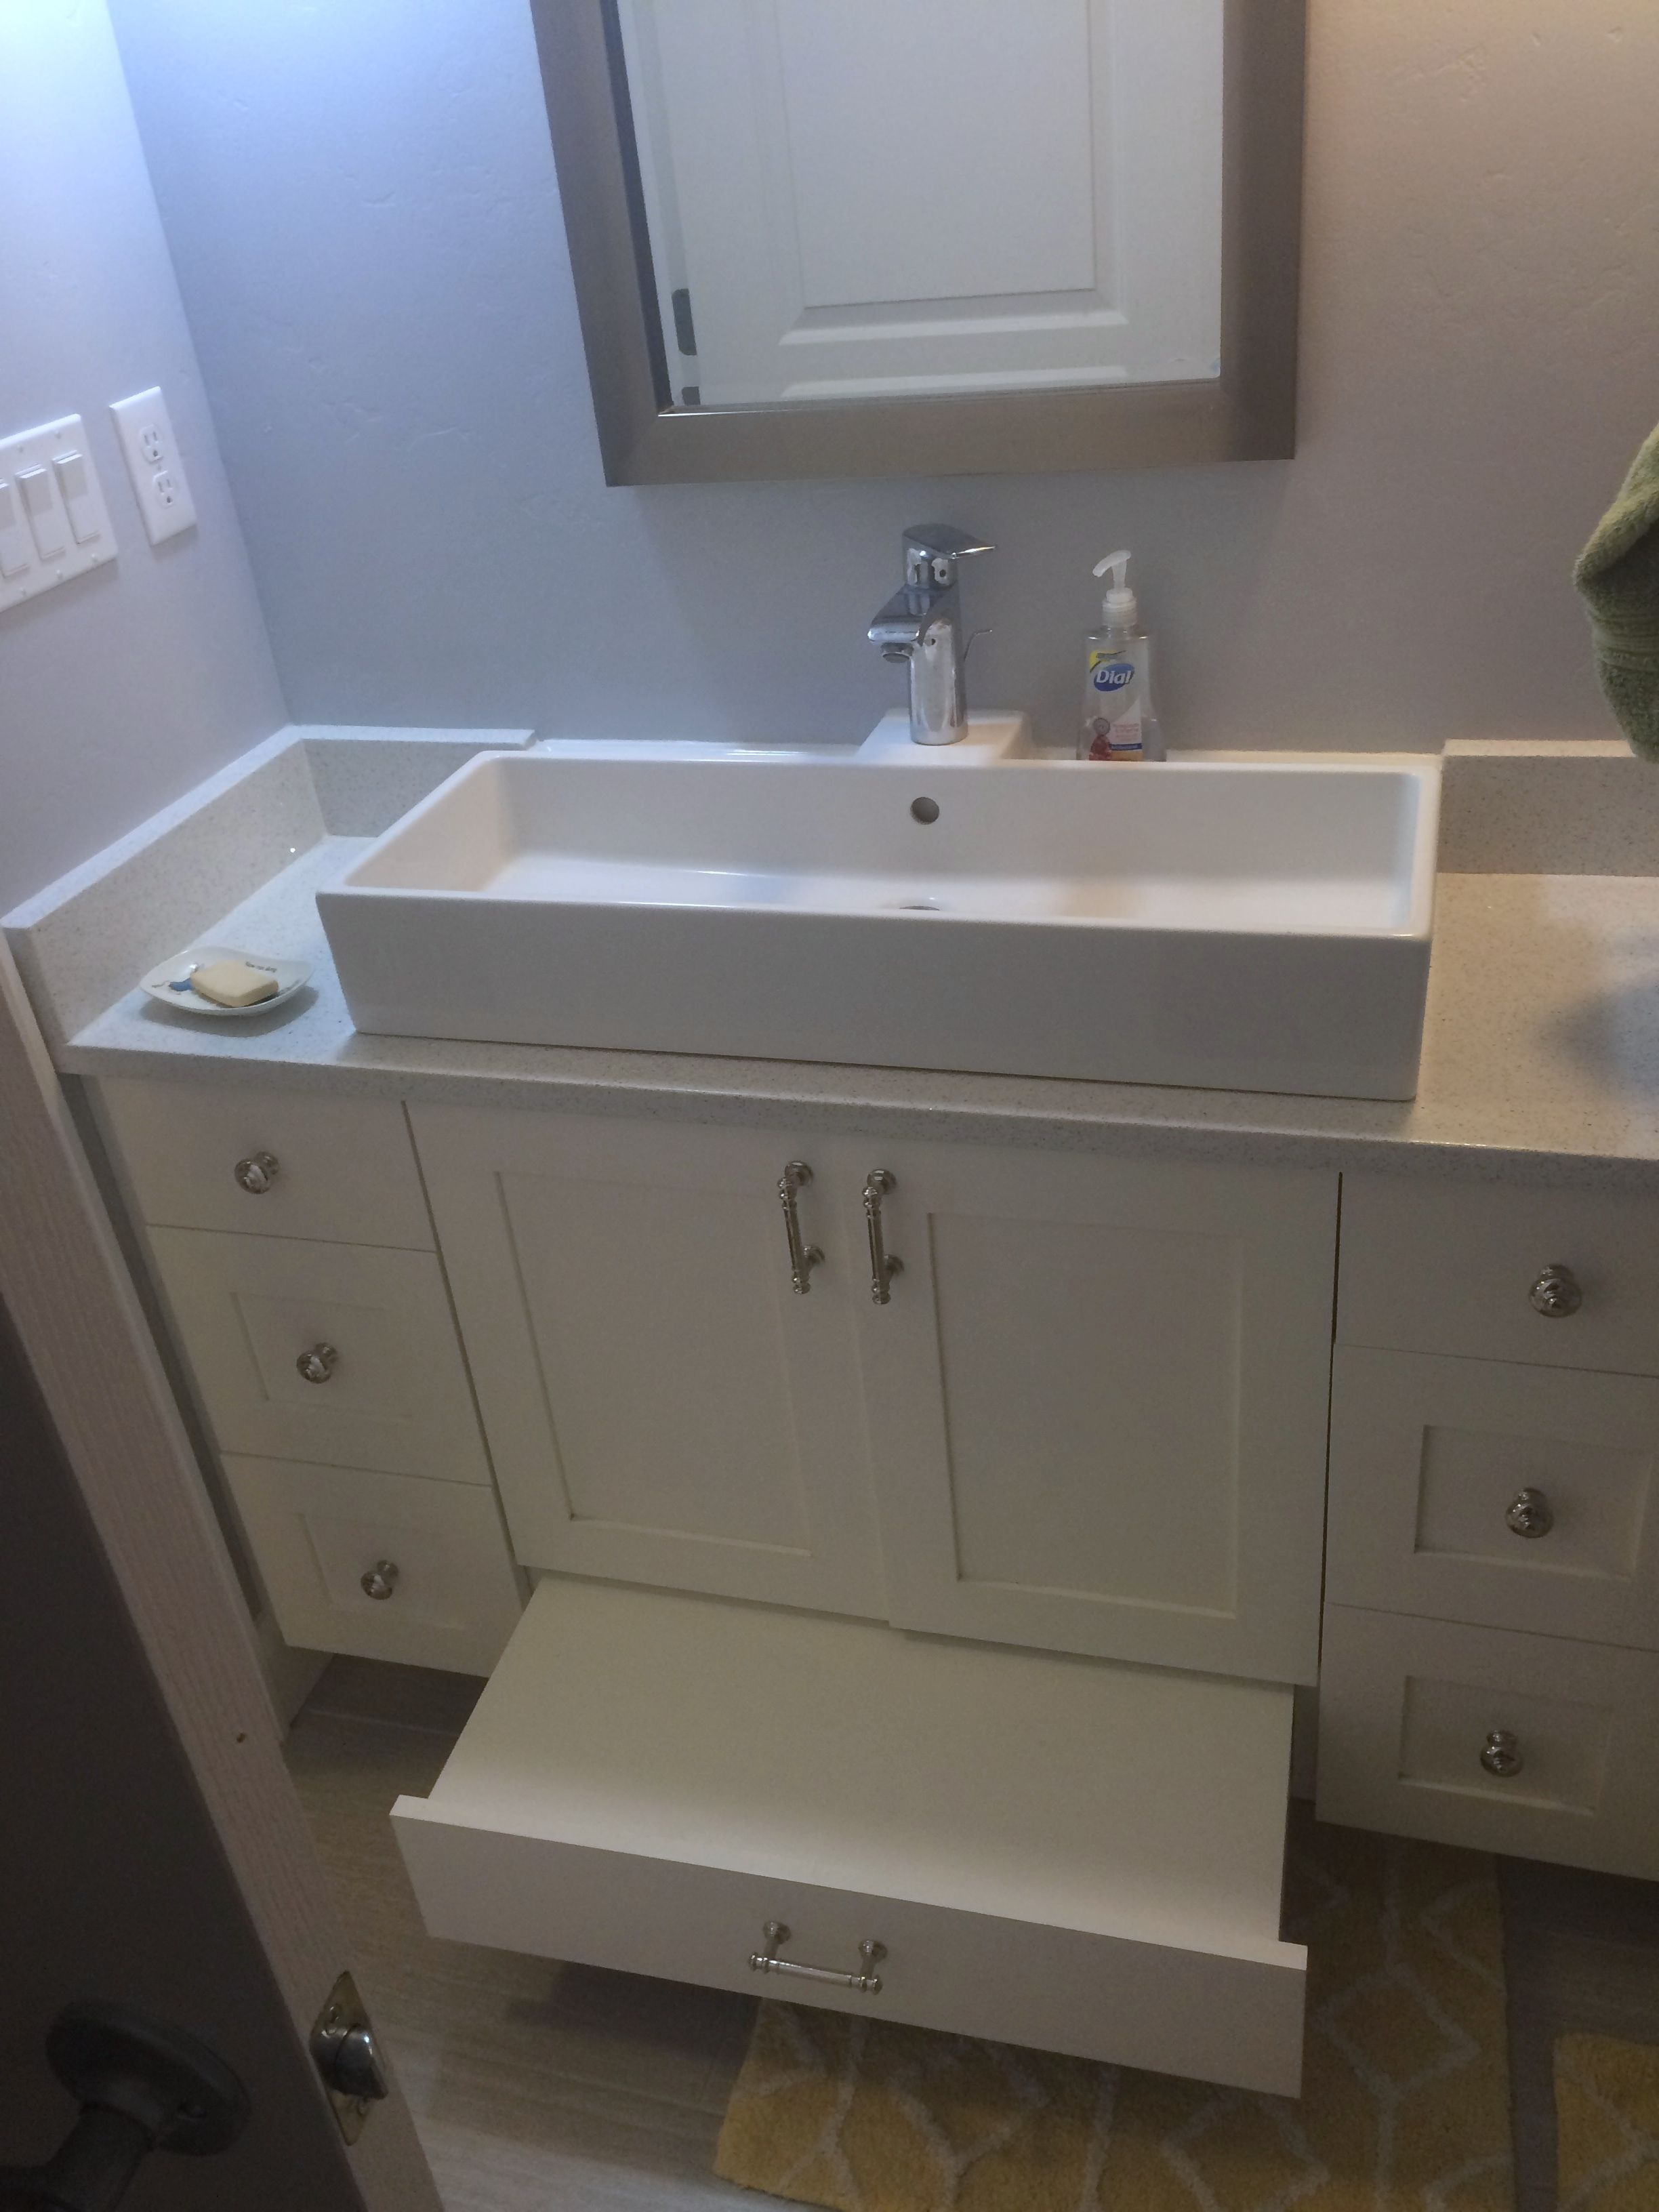 Pin On New House Ideas